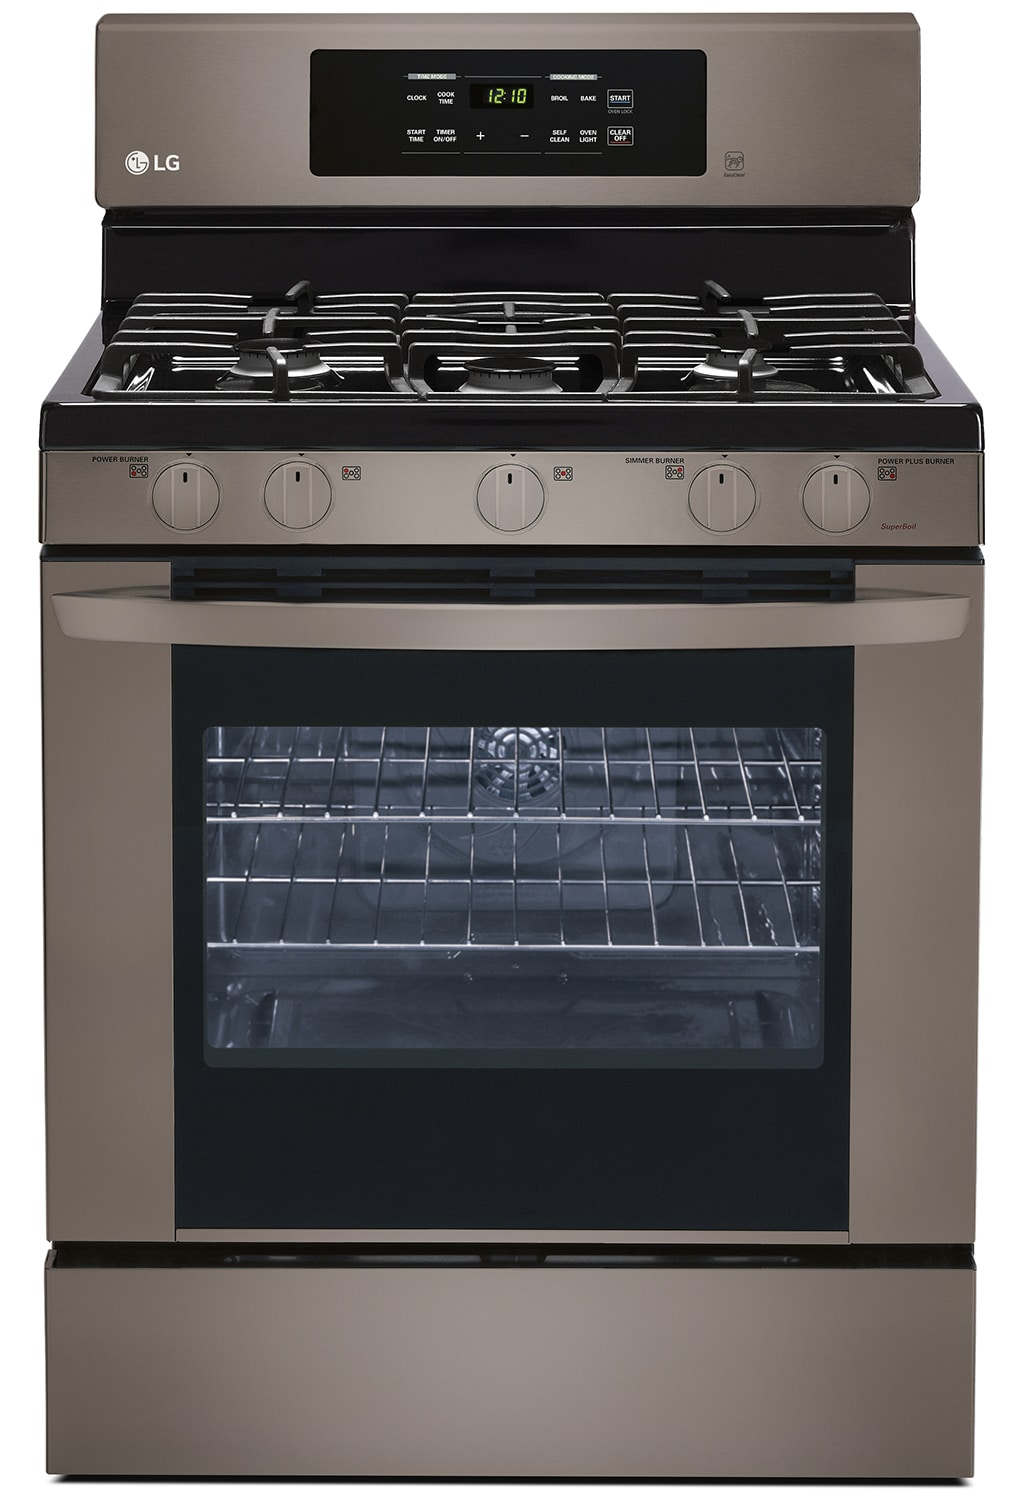 Cooking Products - LG Appliances Black Stainless Steel Gas Convection Range (5.4 Cu. Ft.) - LRG3081BD